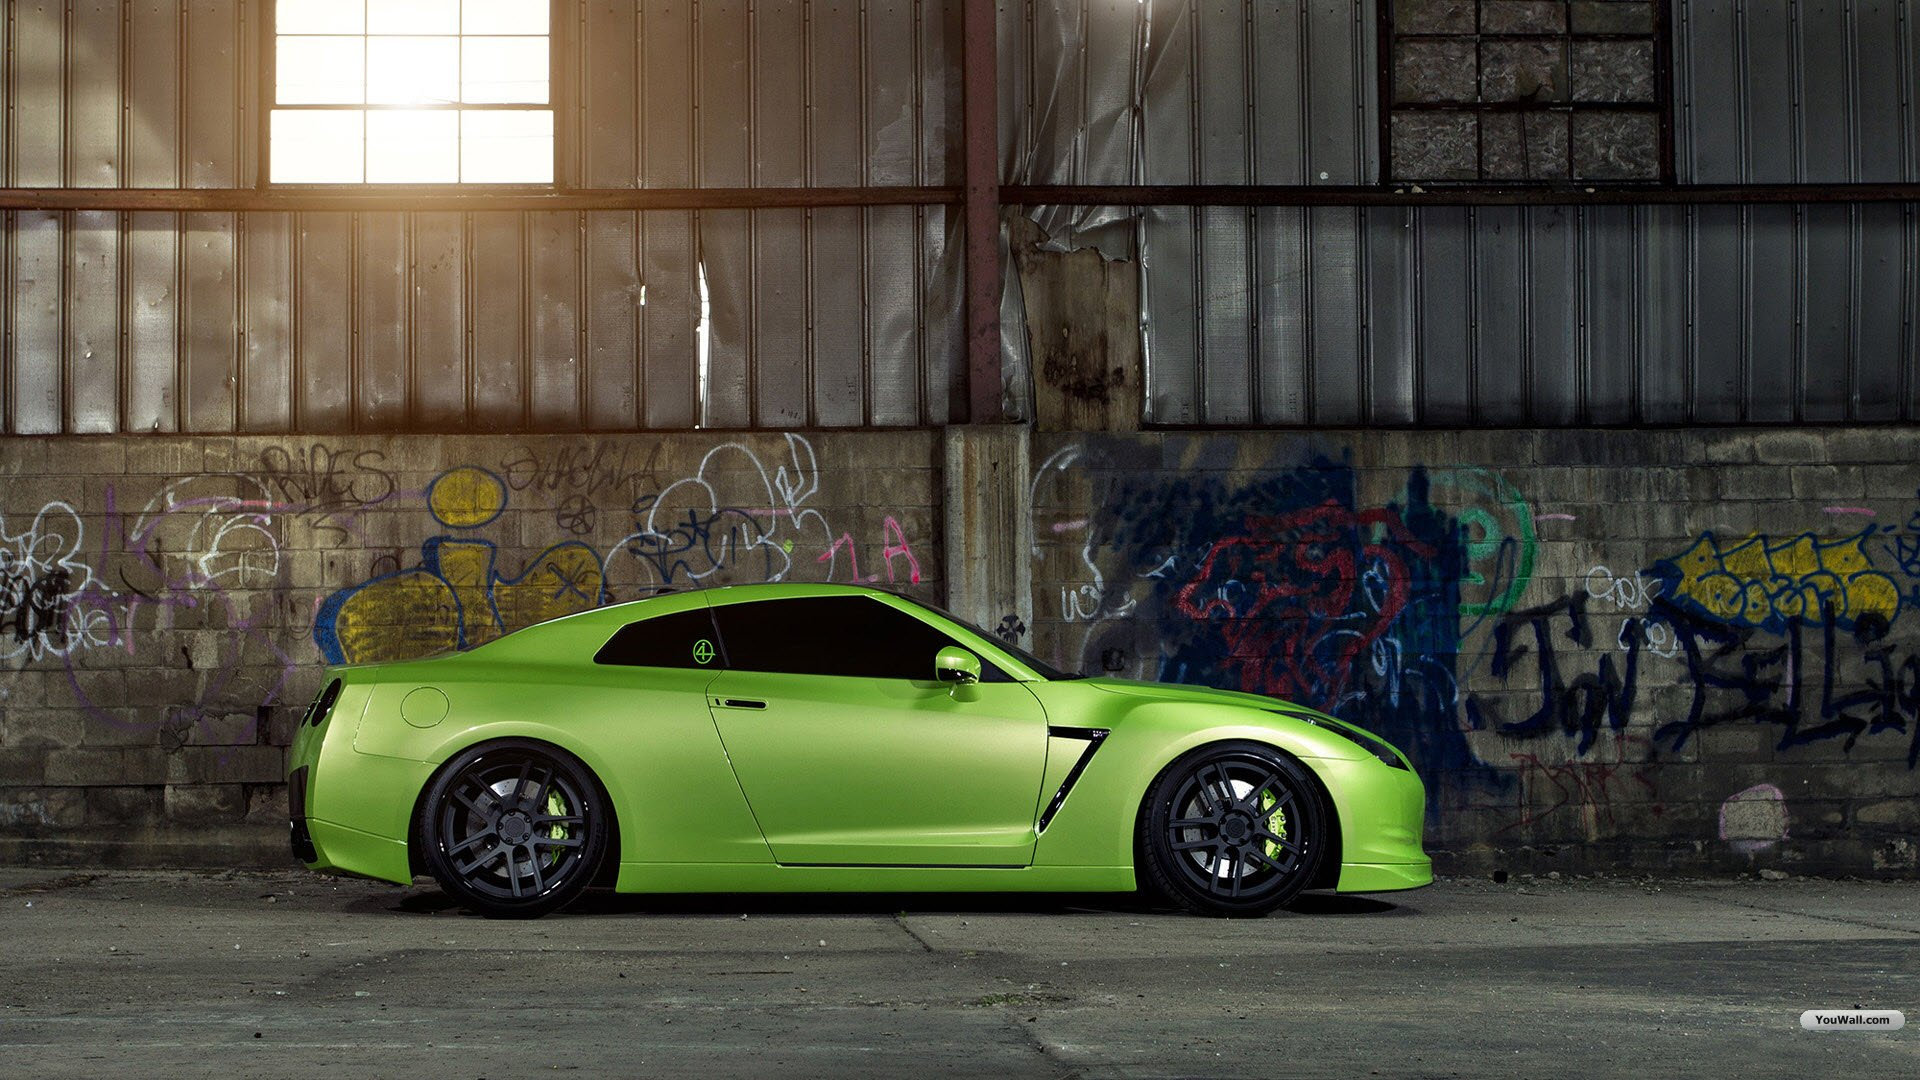 Tuner Car Wallpapers (26 Wallpapers)